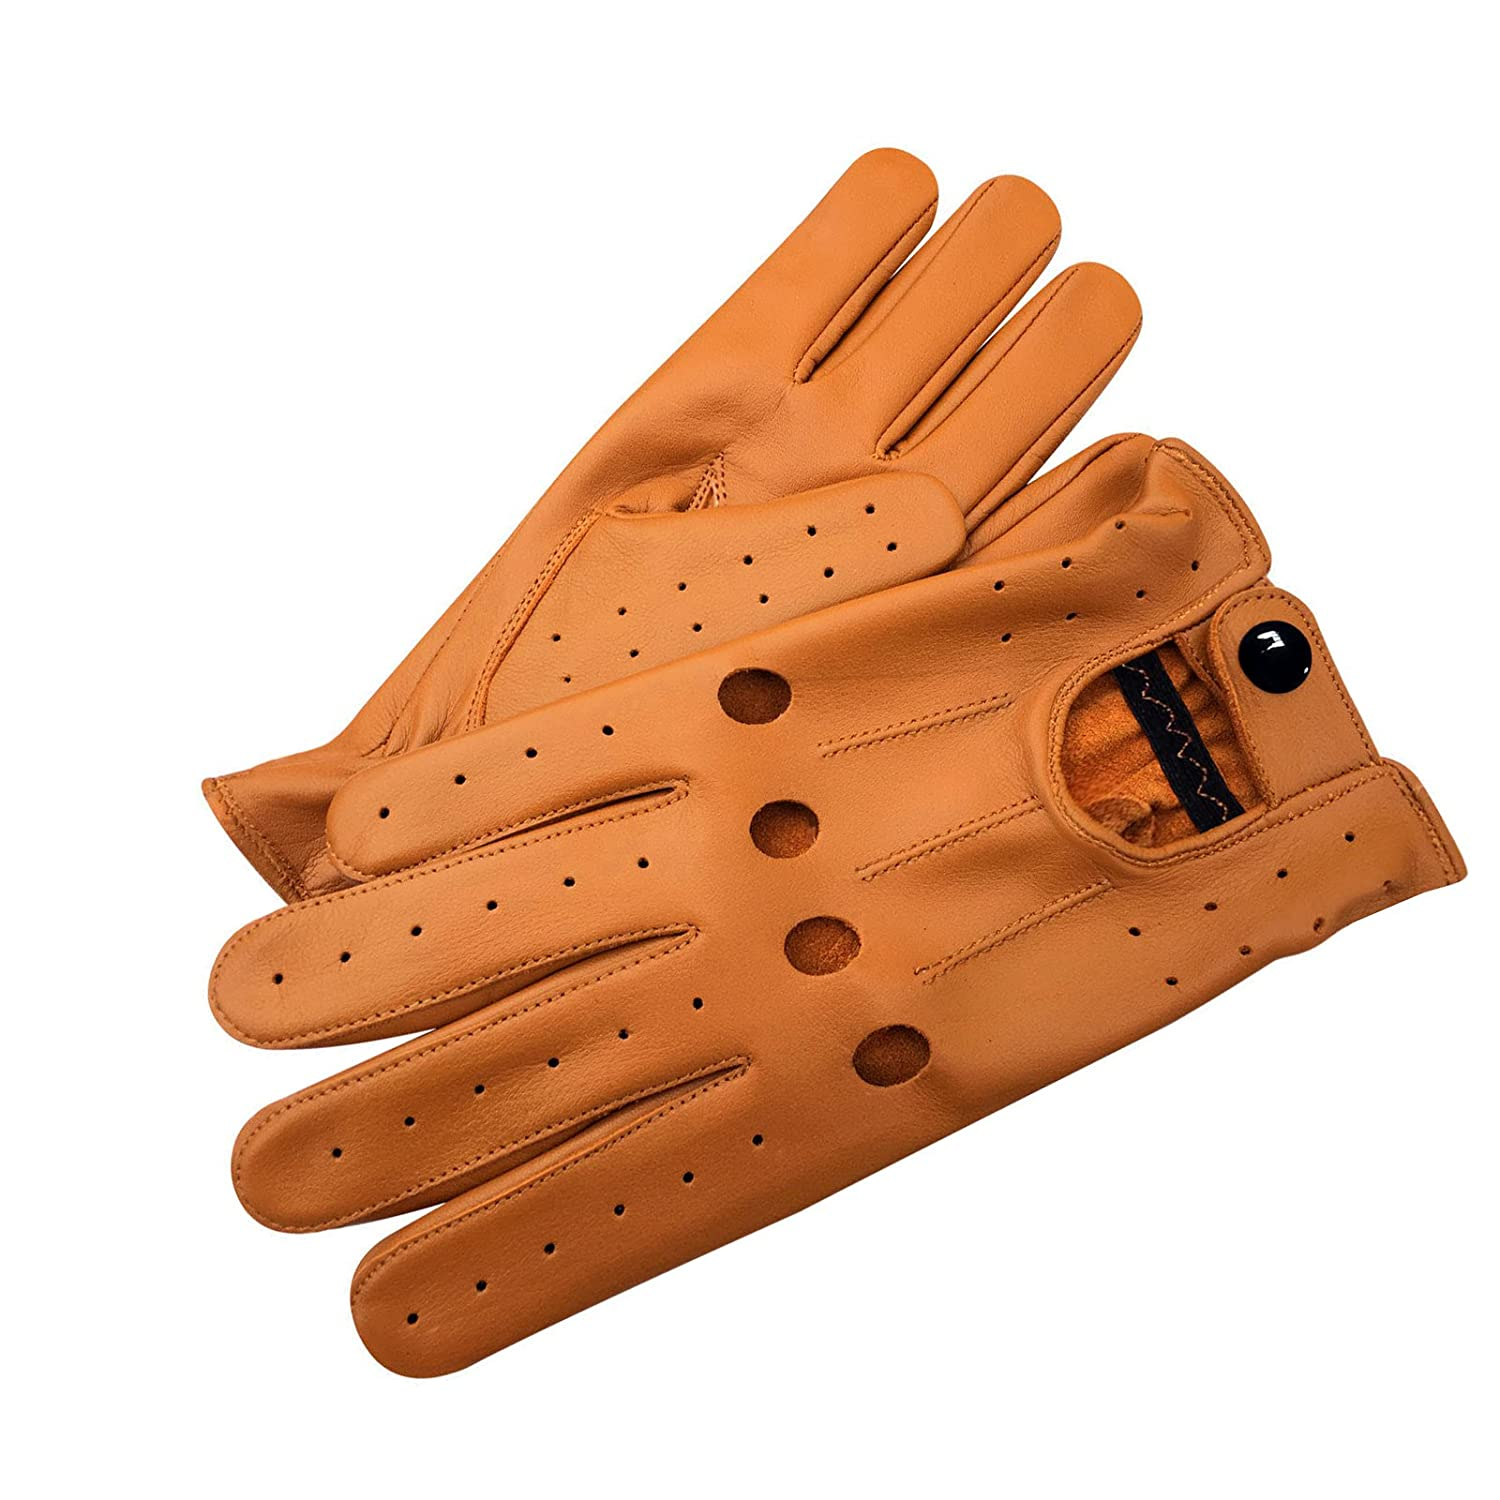 DESIGNER J WILSON MENS CLASSIC DRIVING GLOVES CHAUFFEUR SOFT LAMBSKIN LEATHER DRESS FASHION MOTOR BIKE GLOVE VINTAGE RETRO STYLE GIFT BOXED